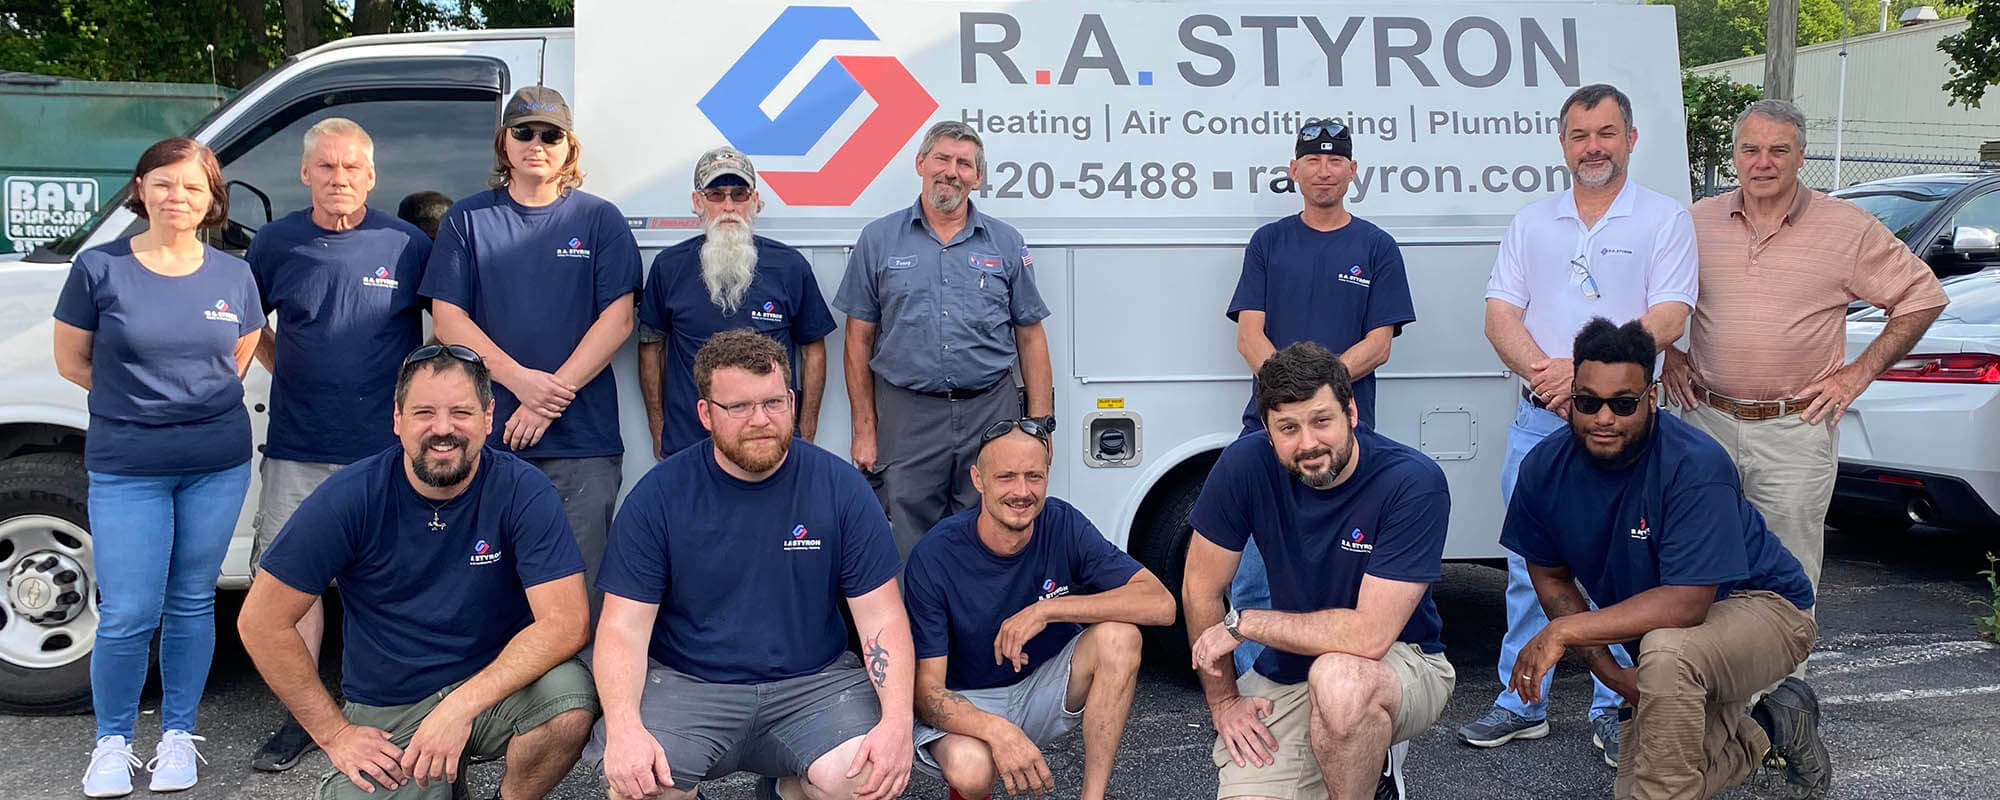 HVAC Chesapeake RASTYON